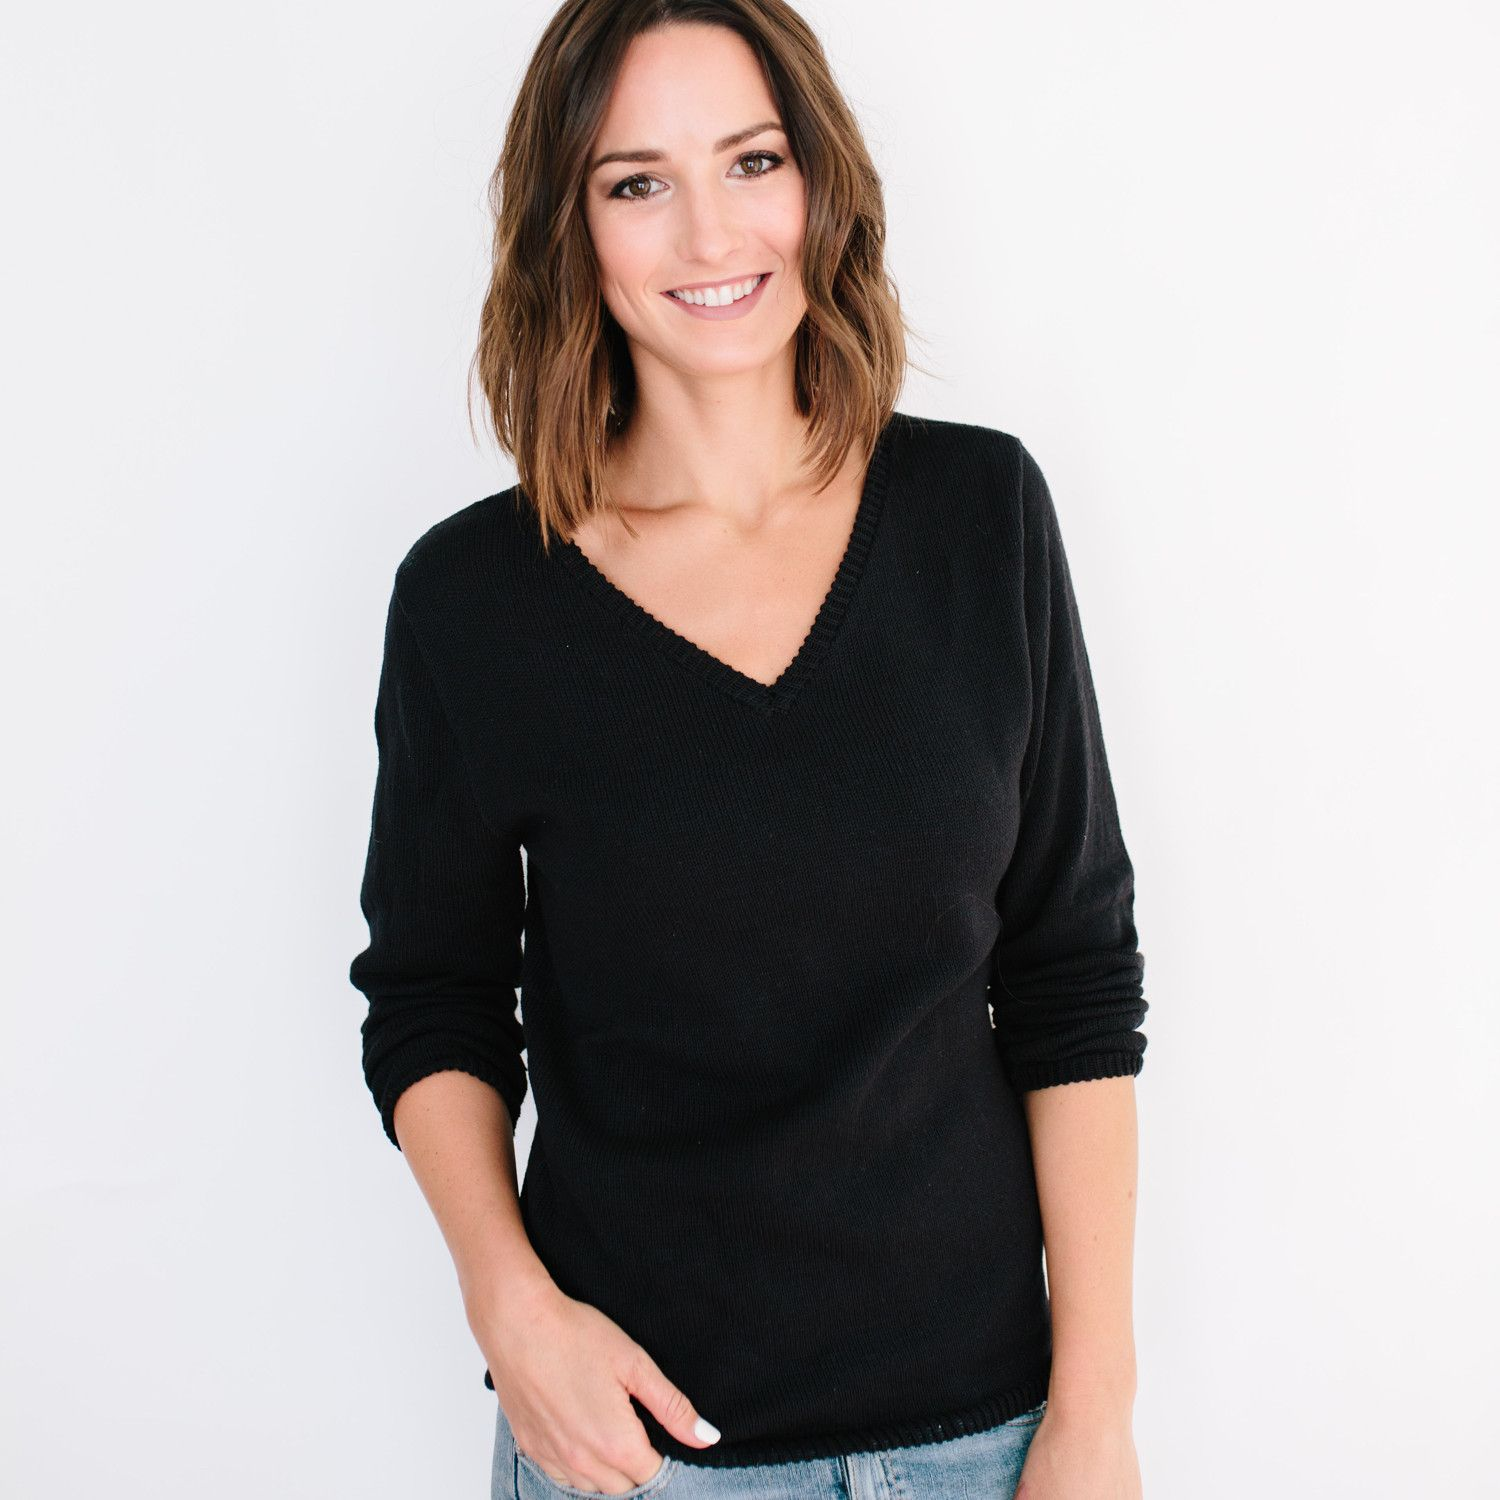 The Relaxed Vee Black Fashion, Women, Ethical clothing